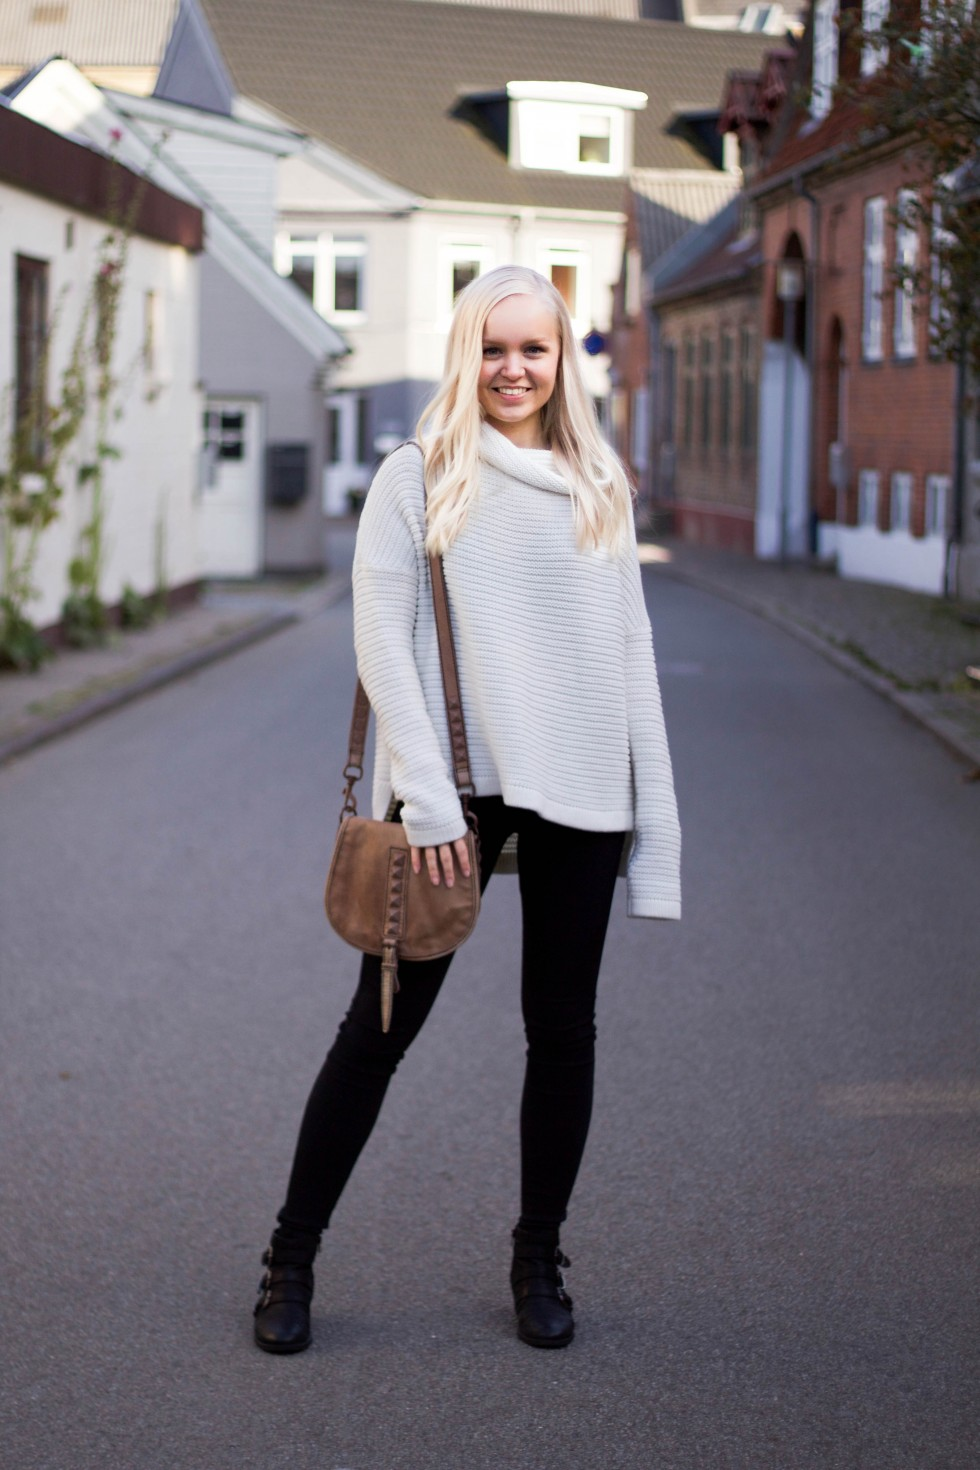 Outfit of the day - white knit, black skinny jeans and black boots.